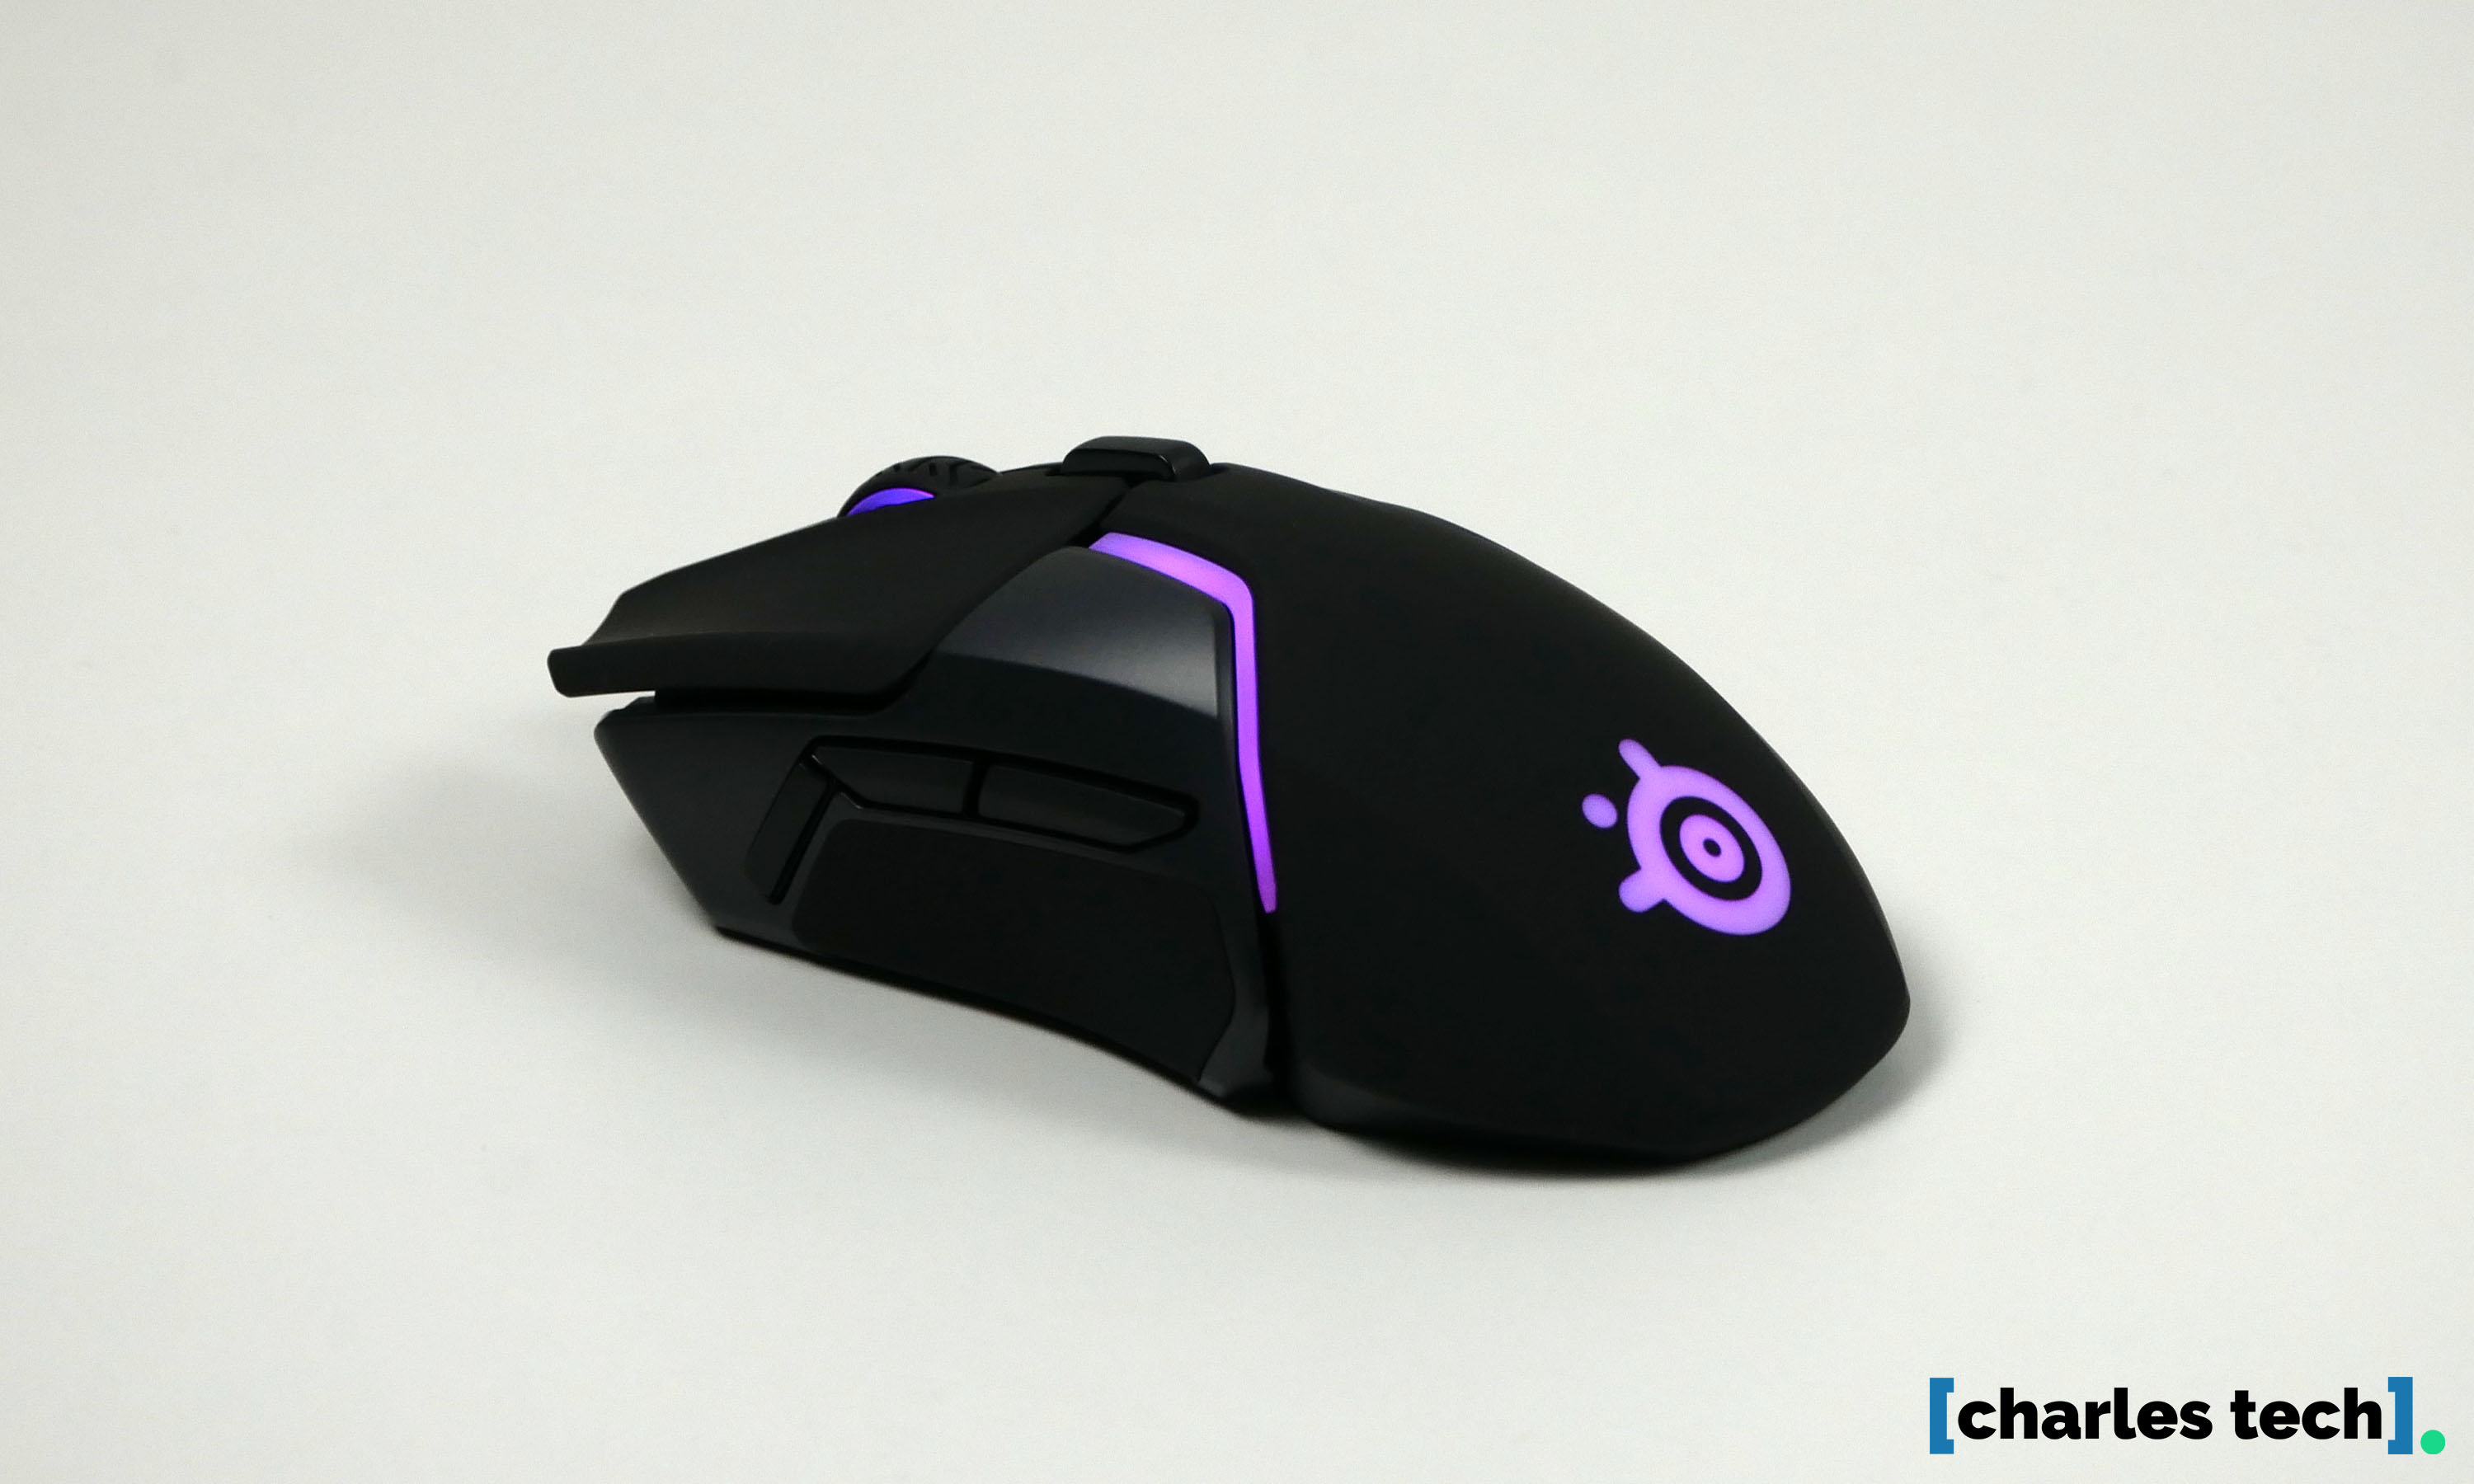 test_steelseries_rival_650_charlestech_5